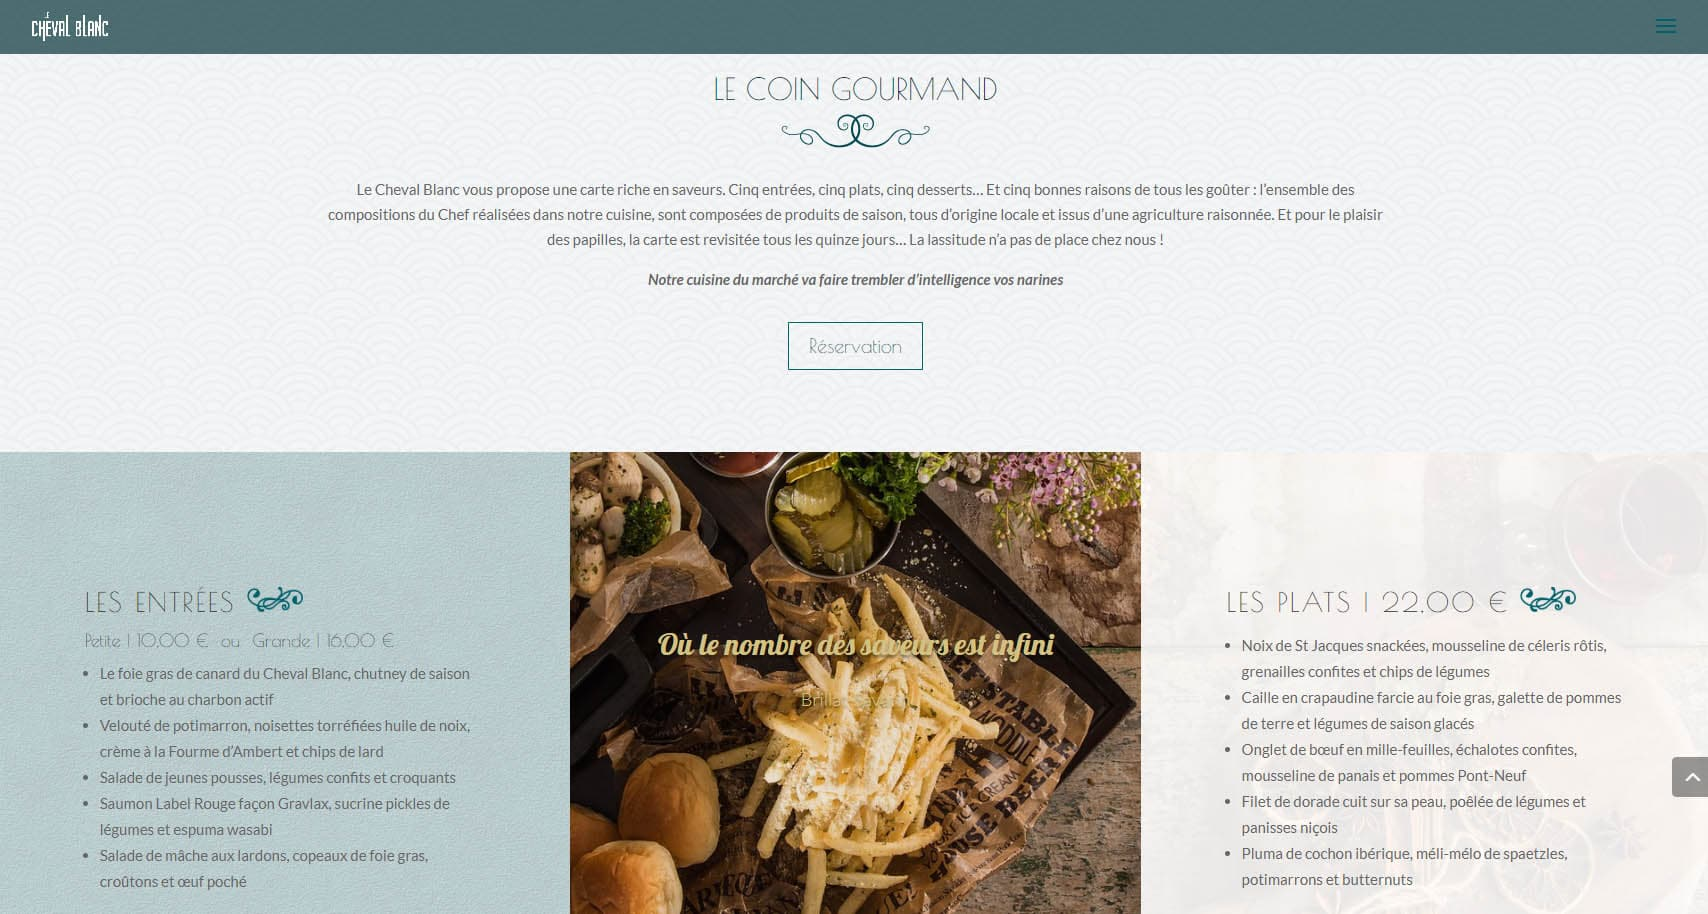 Le Coin Gourmand_Site du Cheval Blanc